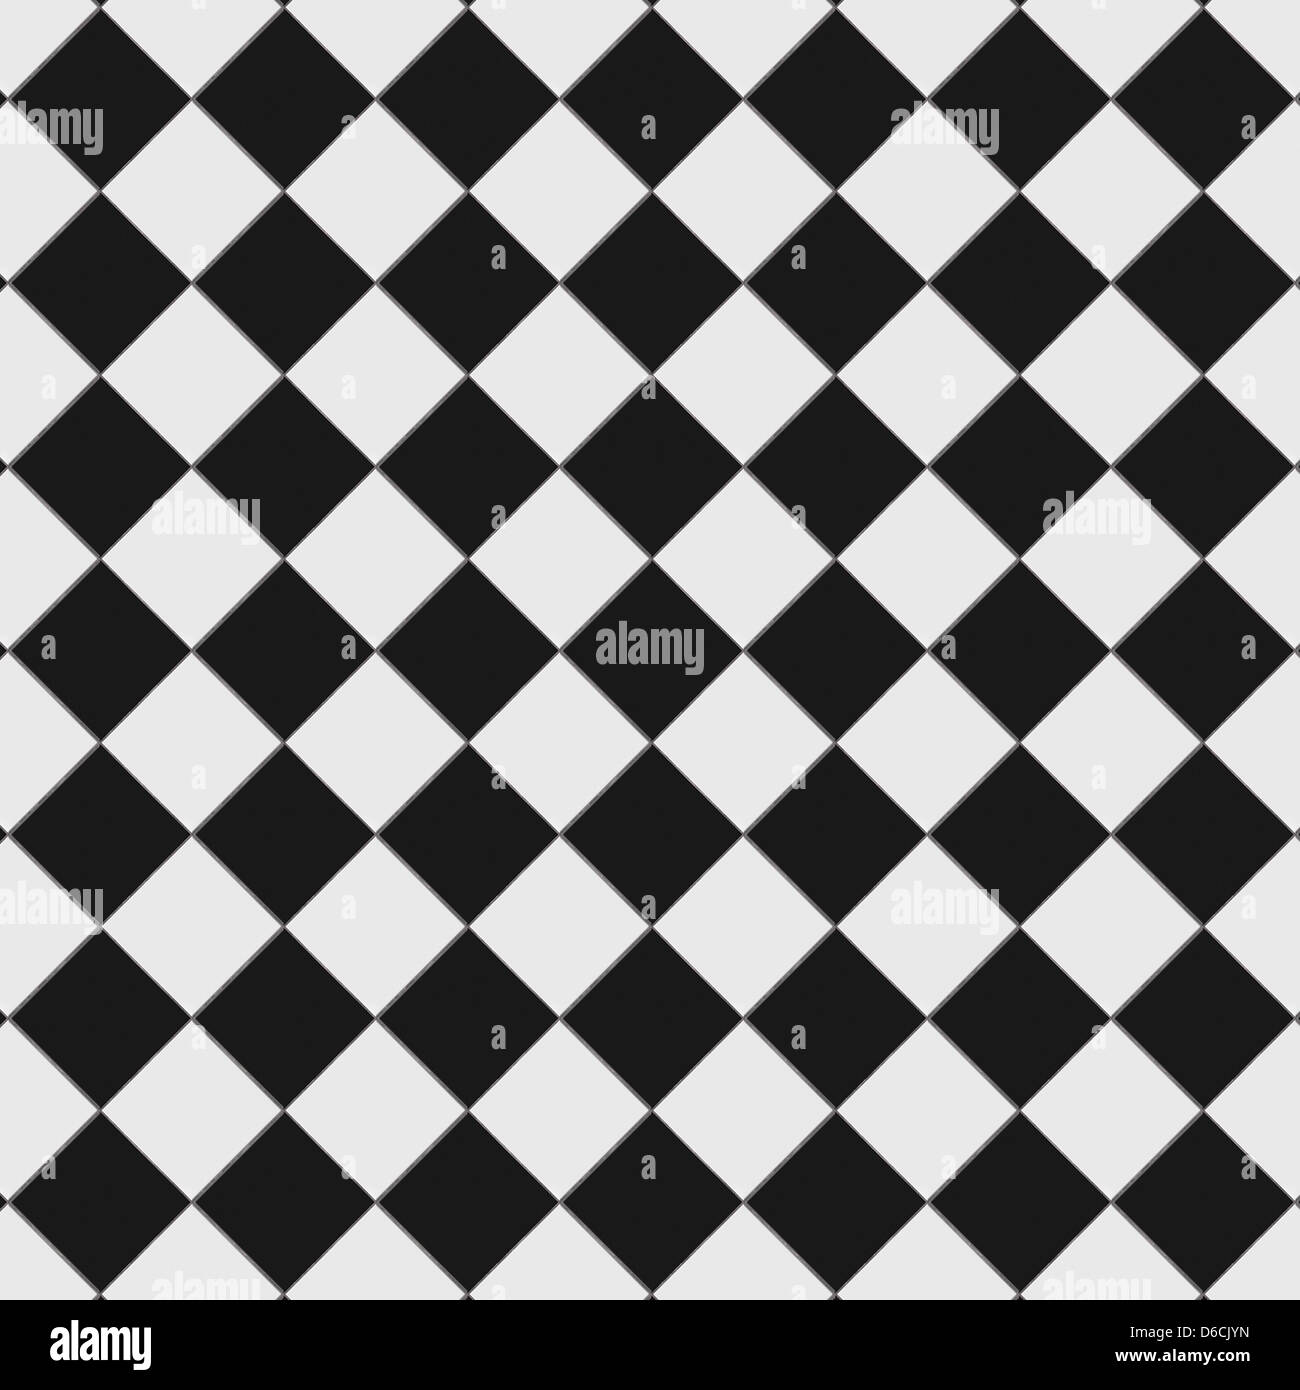 Black and white checkered floor tiles with texture. This tiles ...